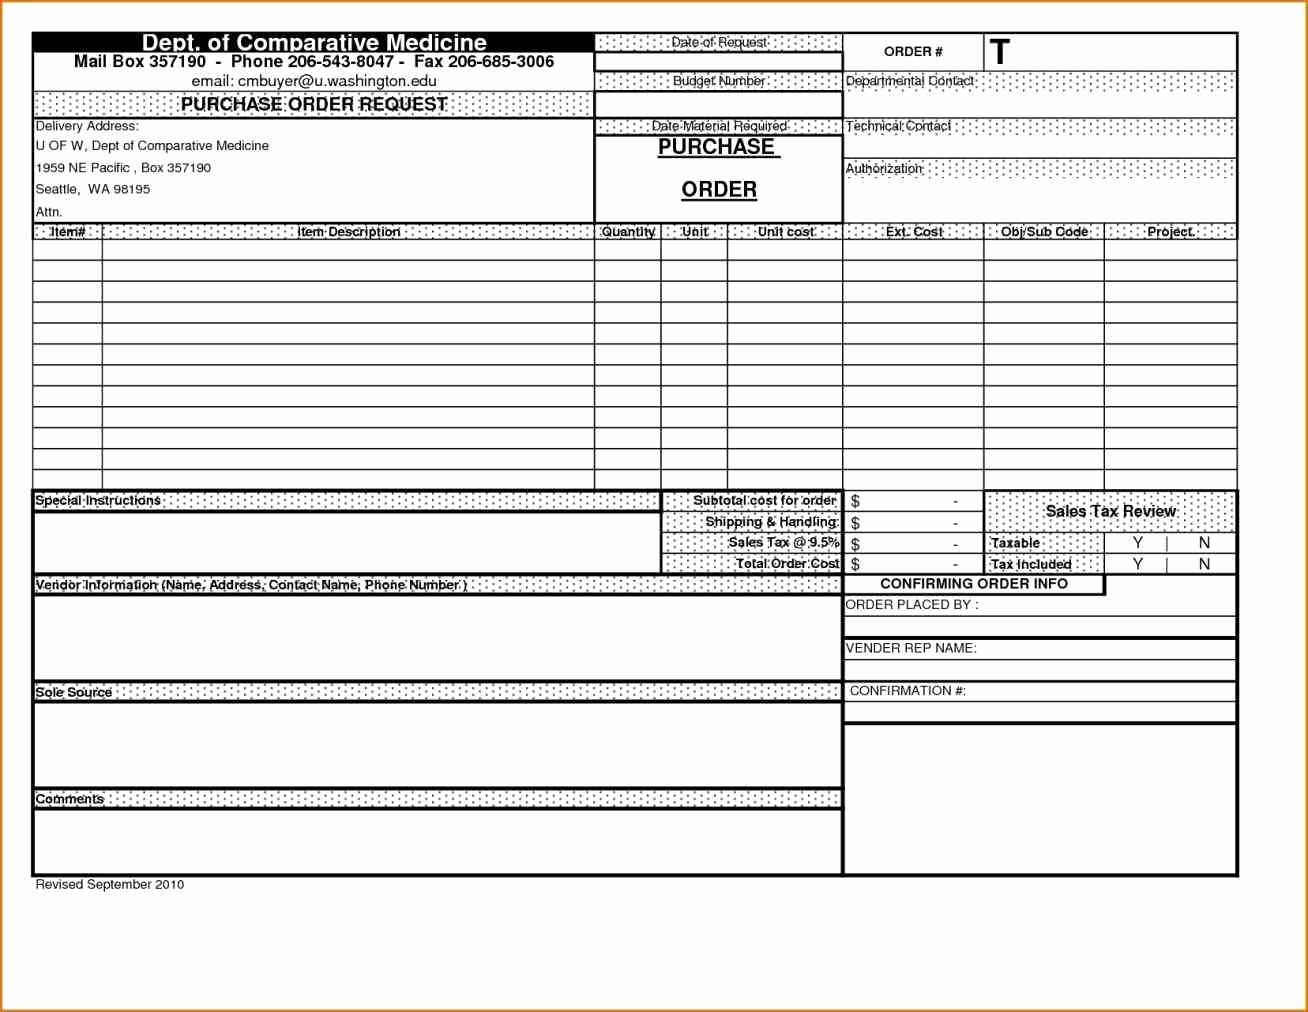 Purchase order Tracking Excel Sheet Lovely Purchase order Excel Database